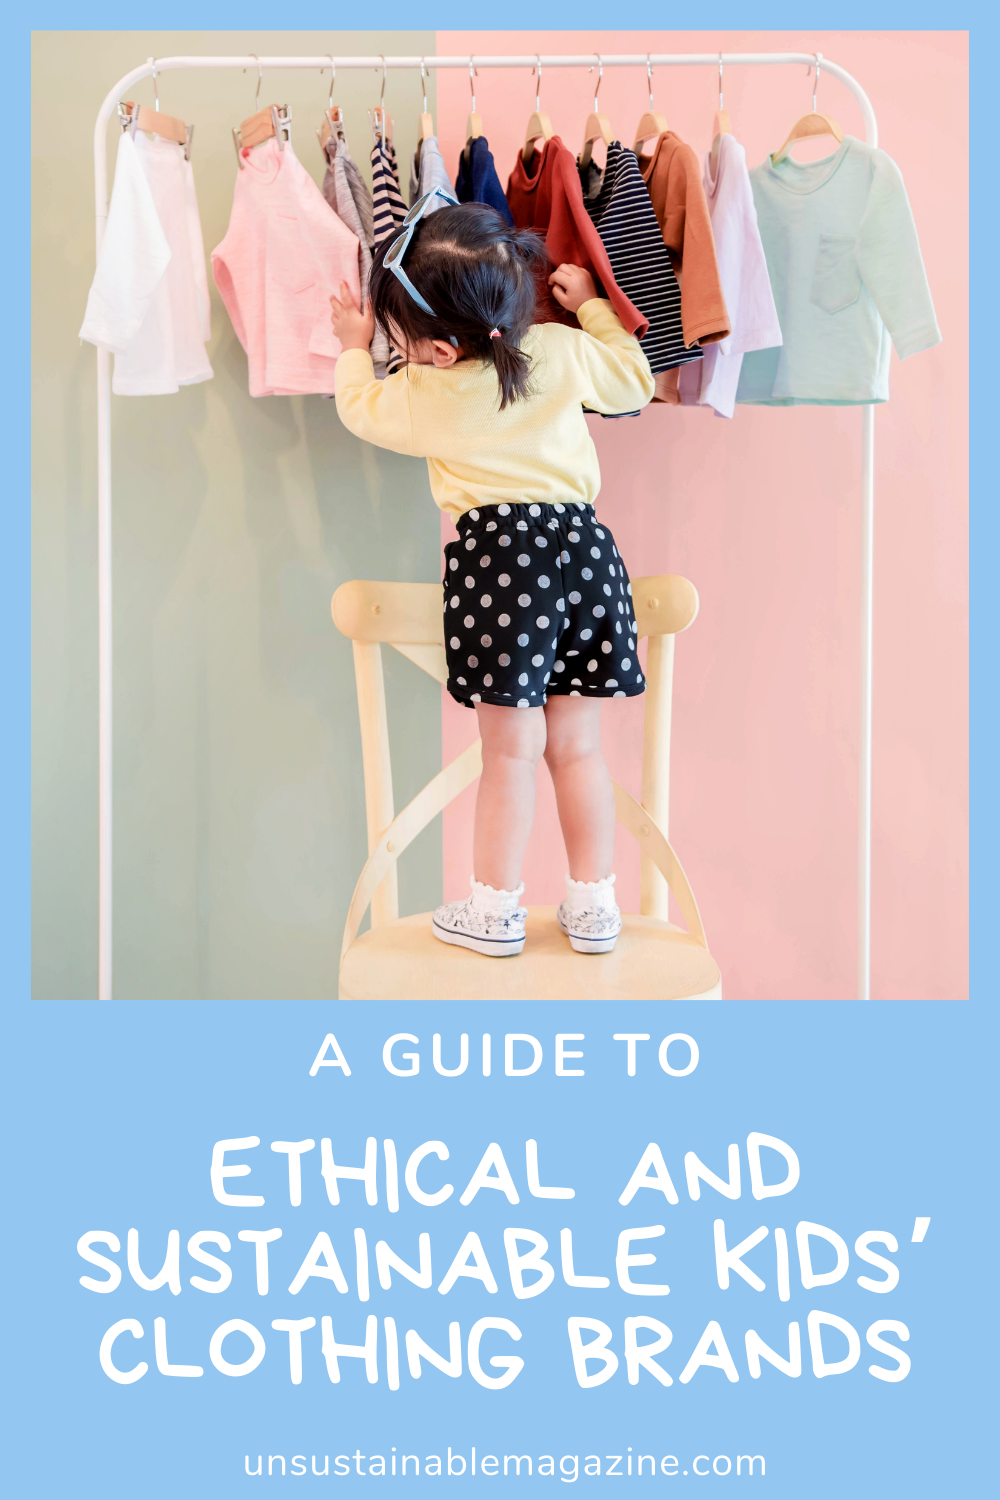 A guide to ethical and sustainable kids' clothing brands